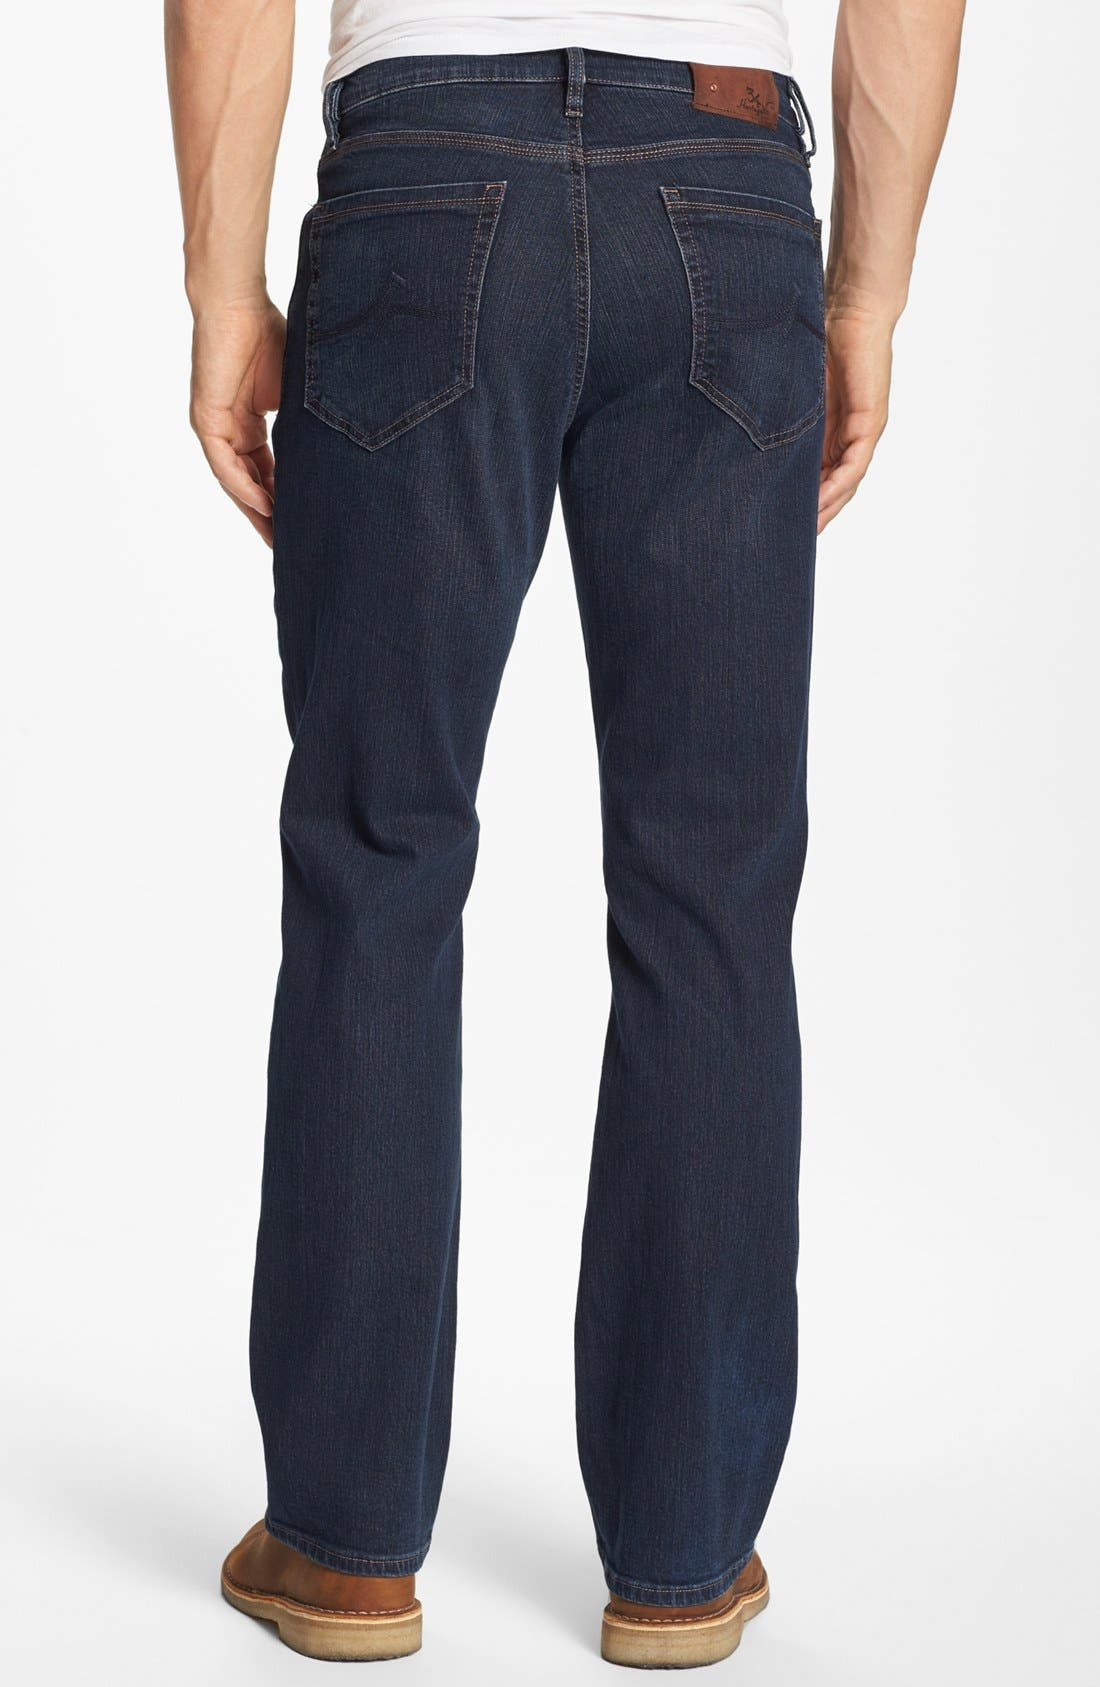 Alternate Image 2  - 34 Heritage Charisma Relaxed Fit Jeans (Dark Comfort) (Regular & Tall)